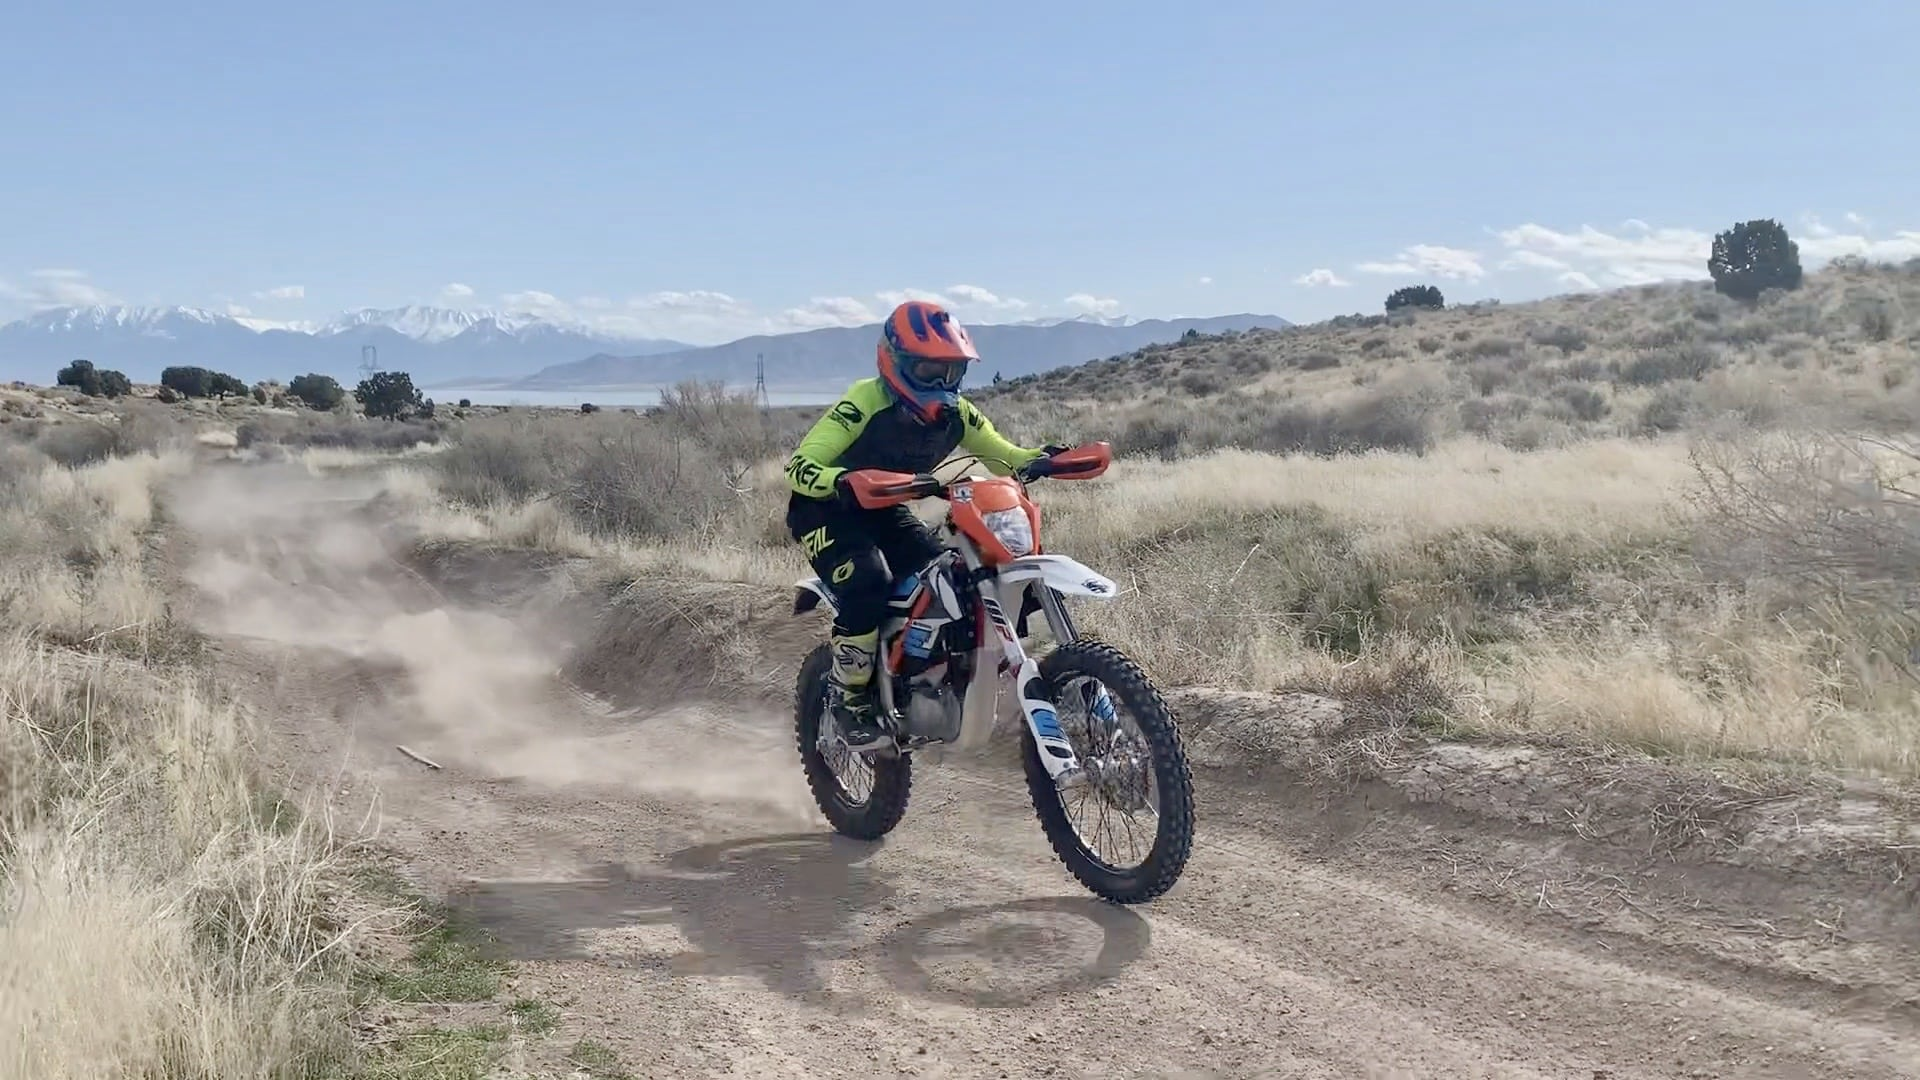 Sam Dirt biking